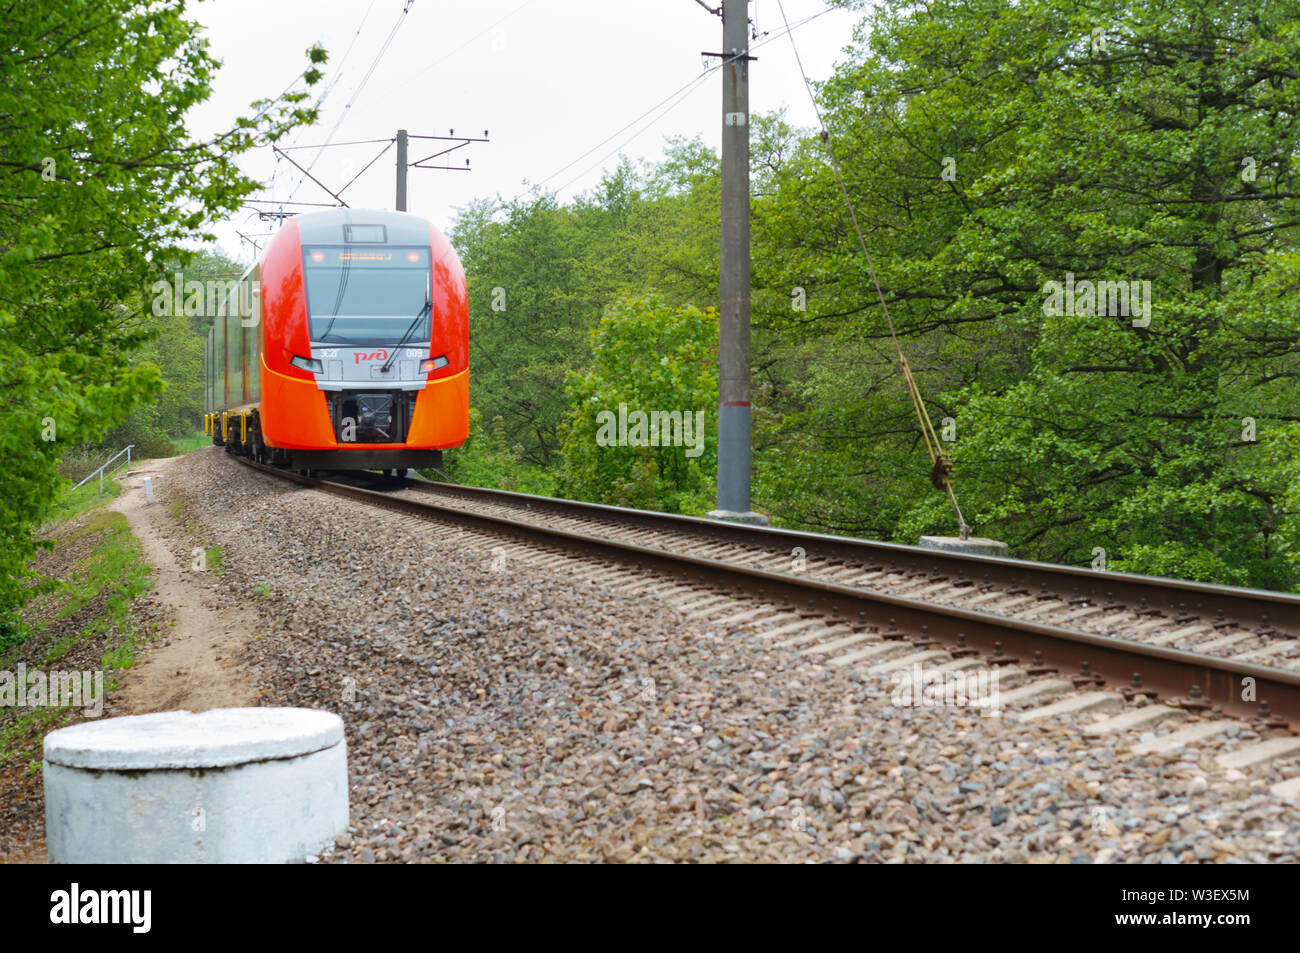 the train is in the distance, the train on the railway tracks, Russian Railways, Kaliningrad region, Russia, may 19, 2019 - Stock Image